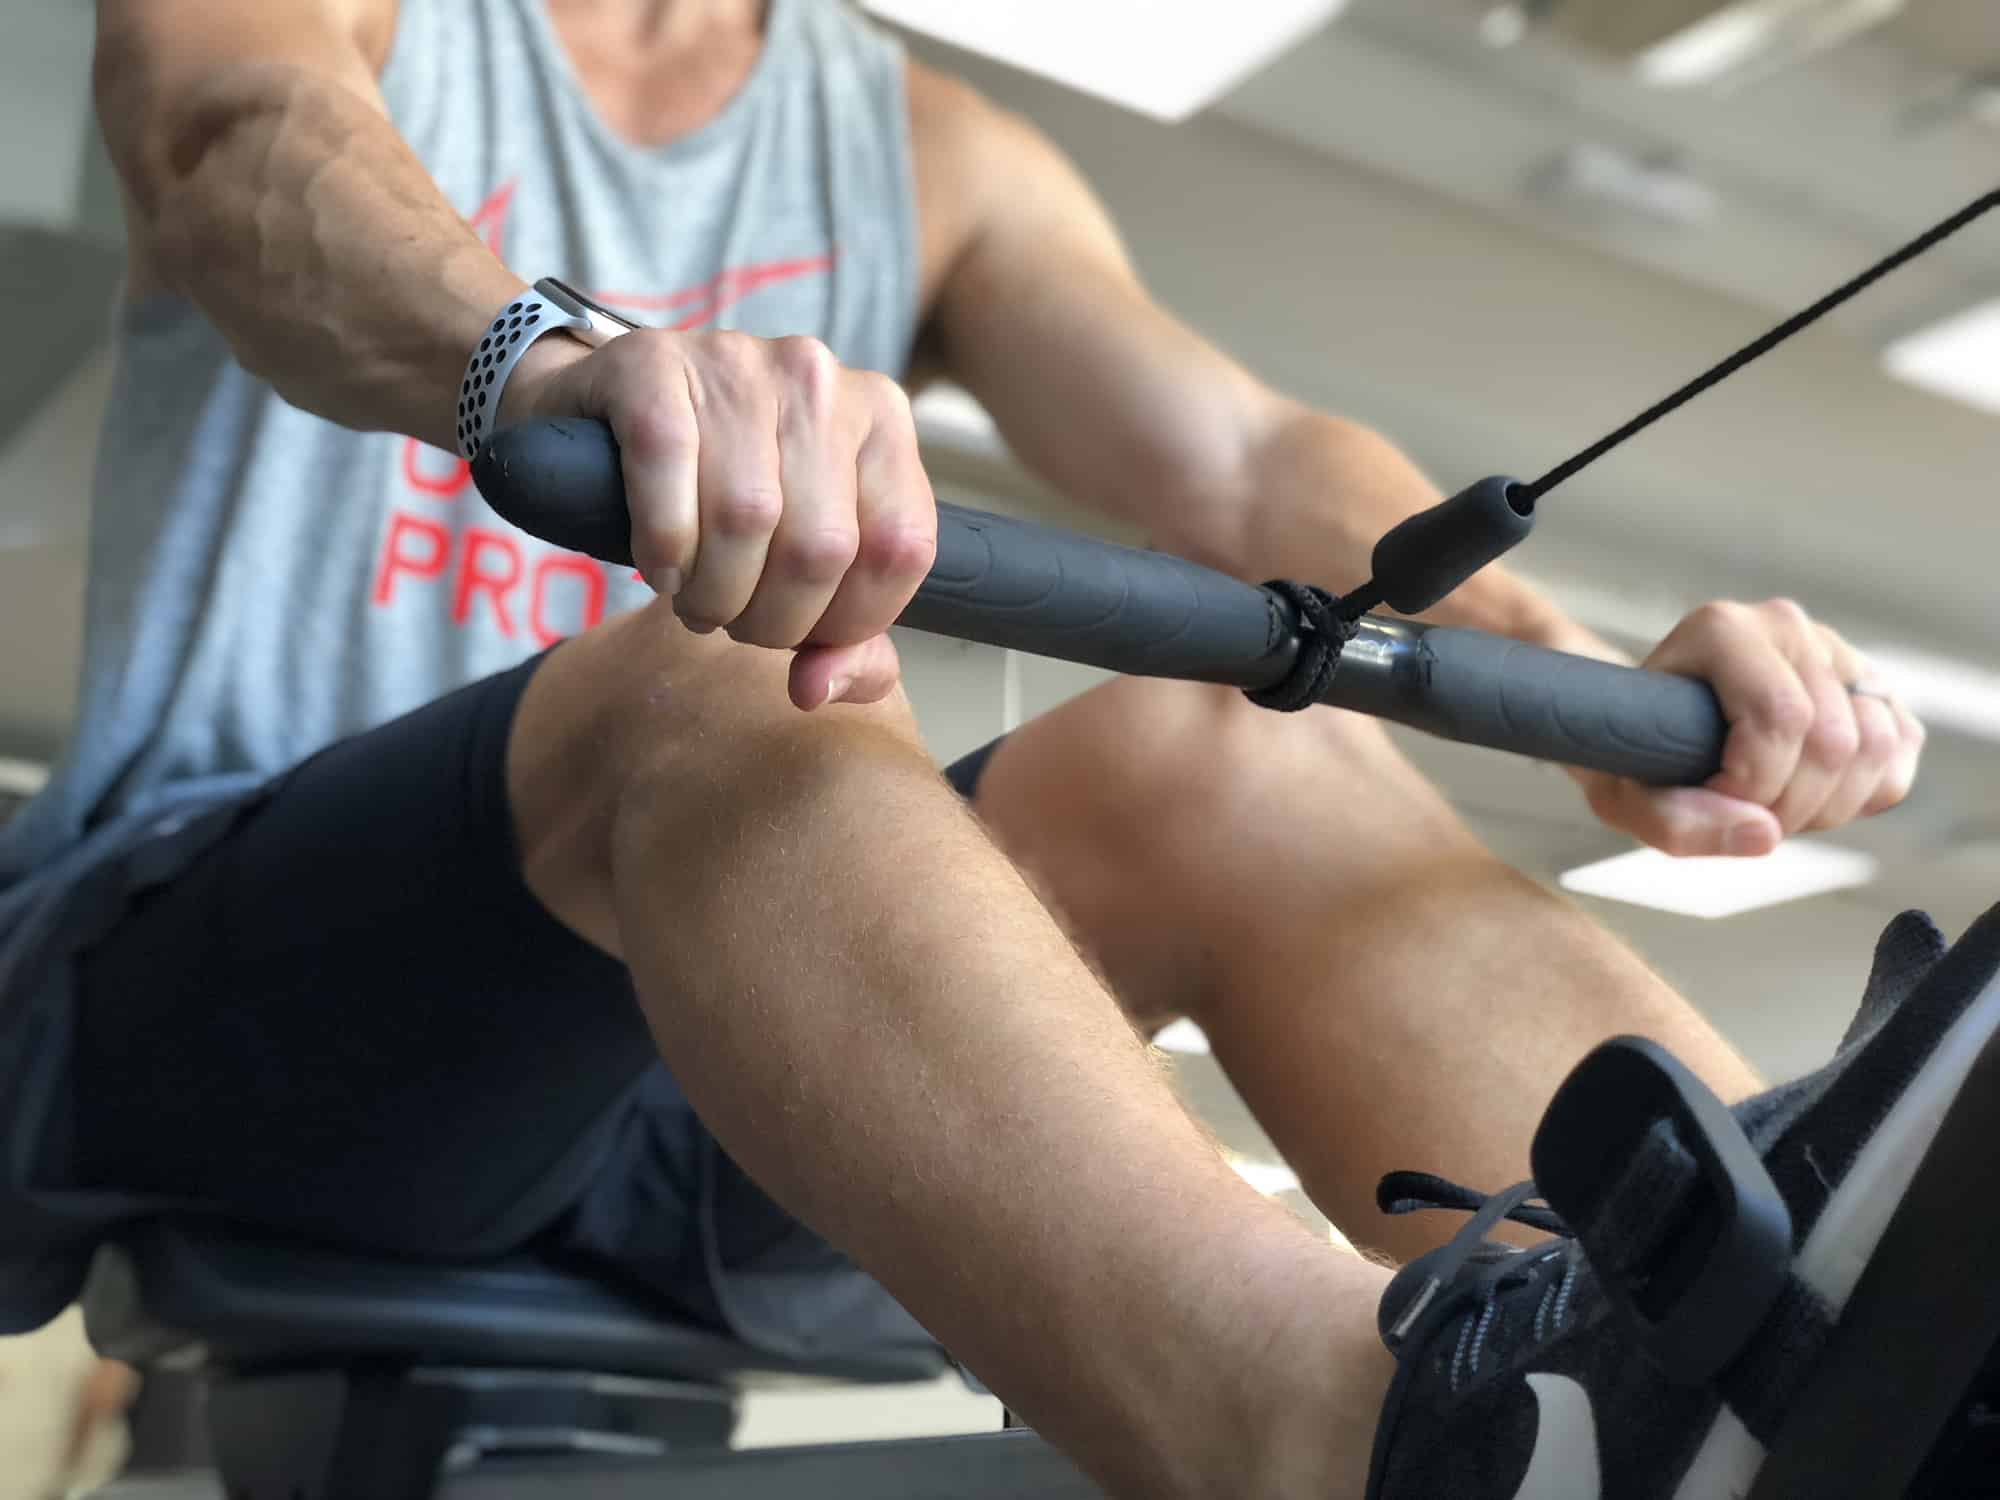 Rowing with Apple Watch is like 2 workouts in 1  Here's how